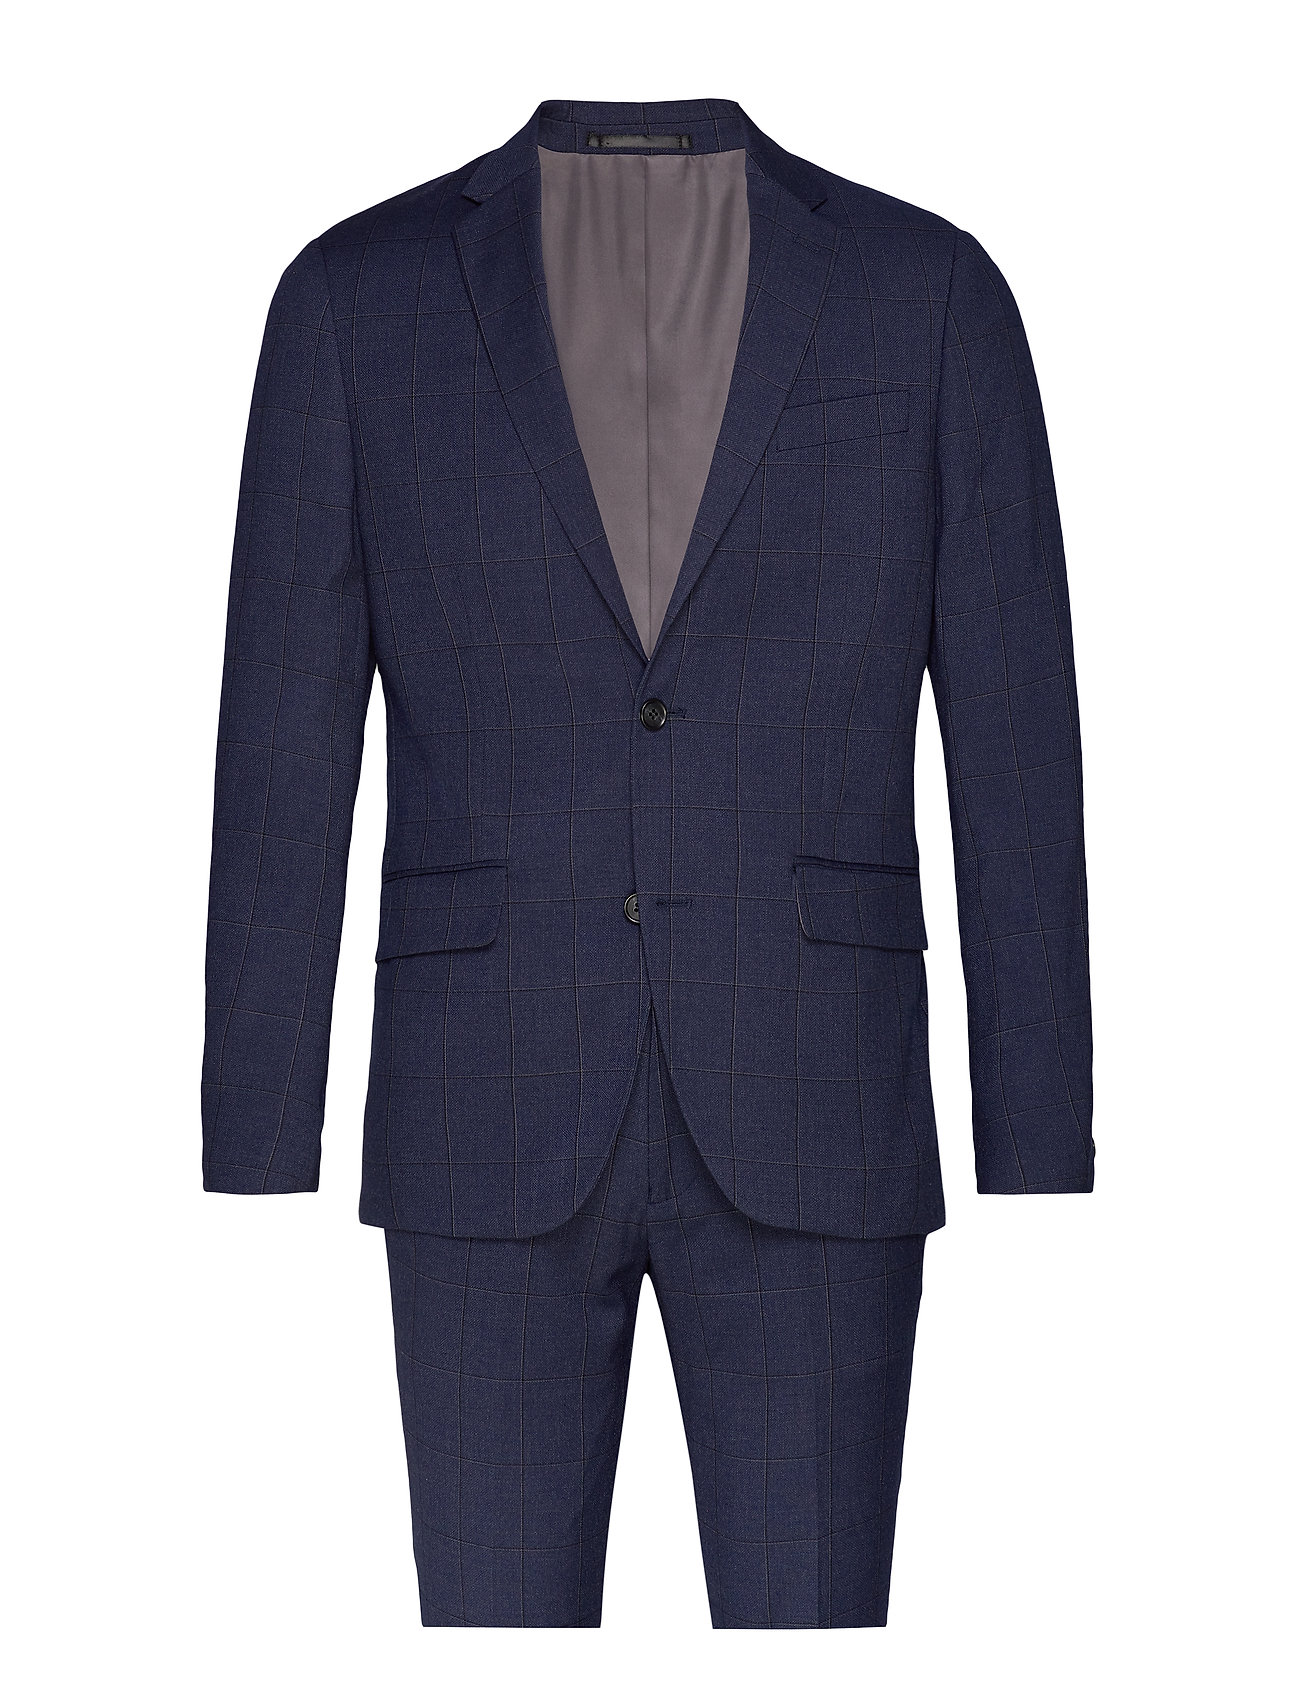 Lindbergh Checked suit - DK BLUE CHECK